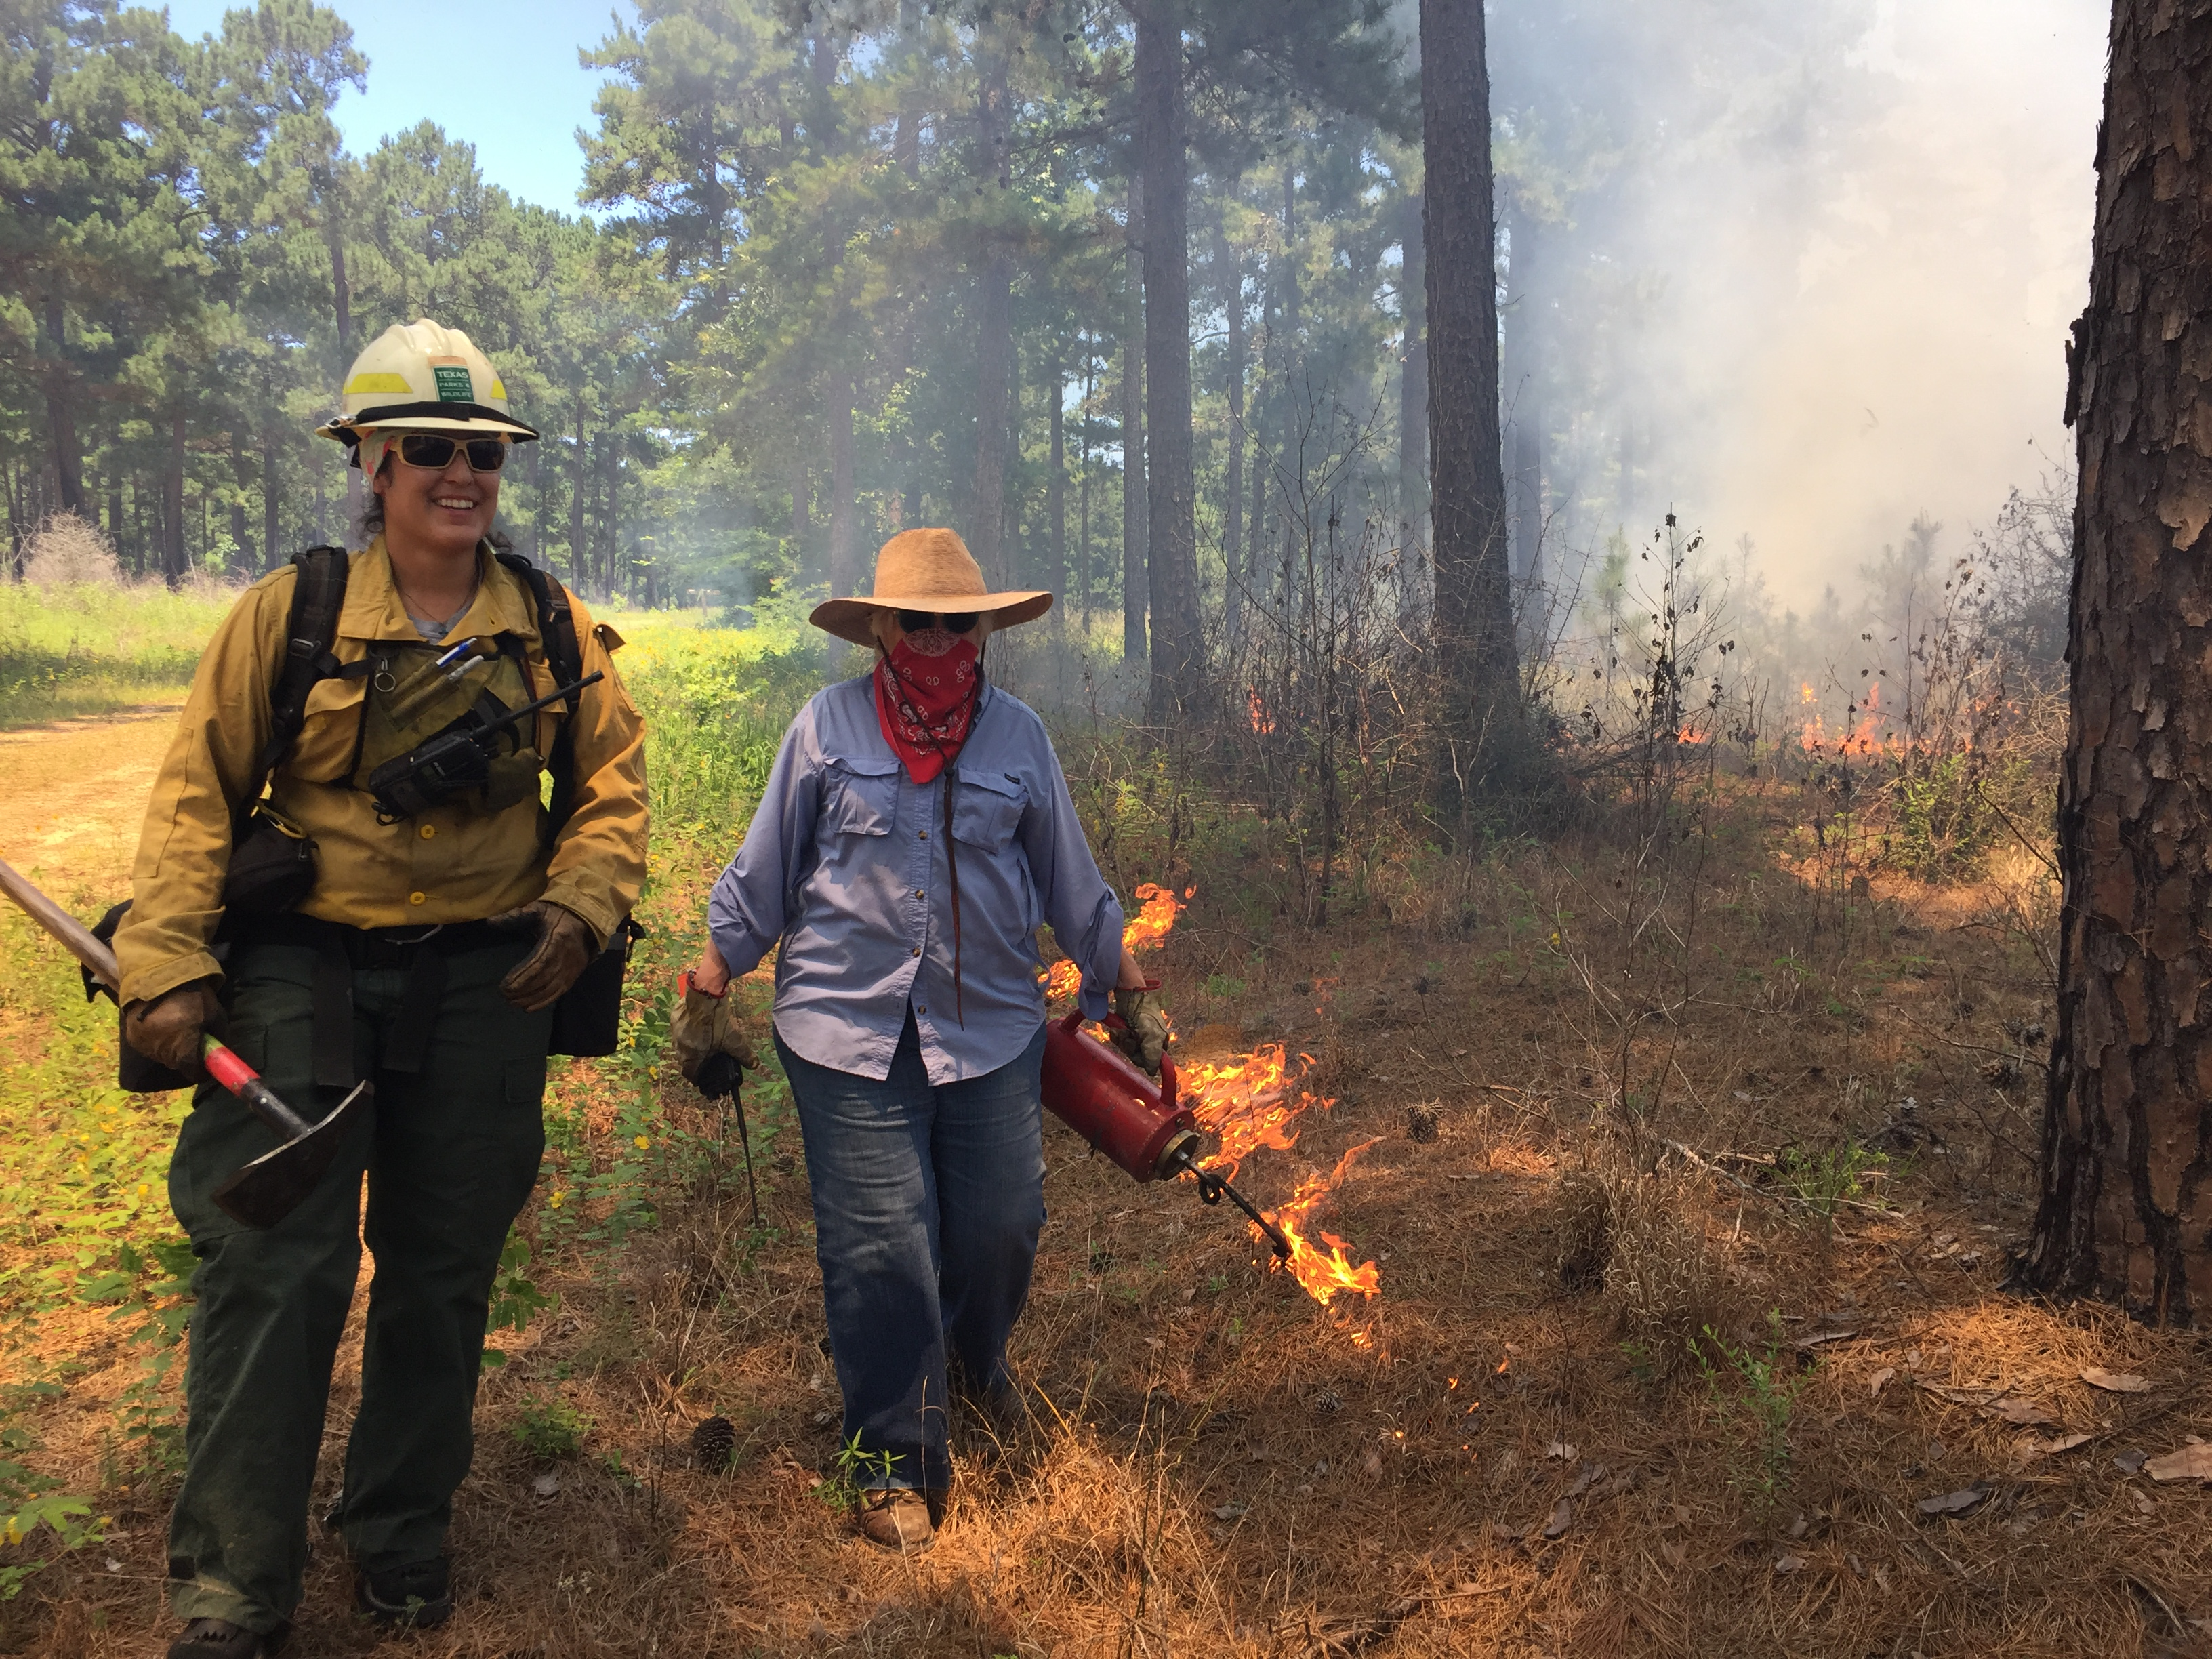 Prescribed Burning Course in Lufkin, TX. Photo credit: Kent Evans